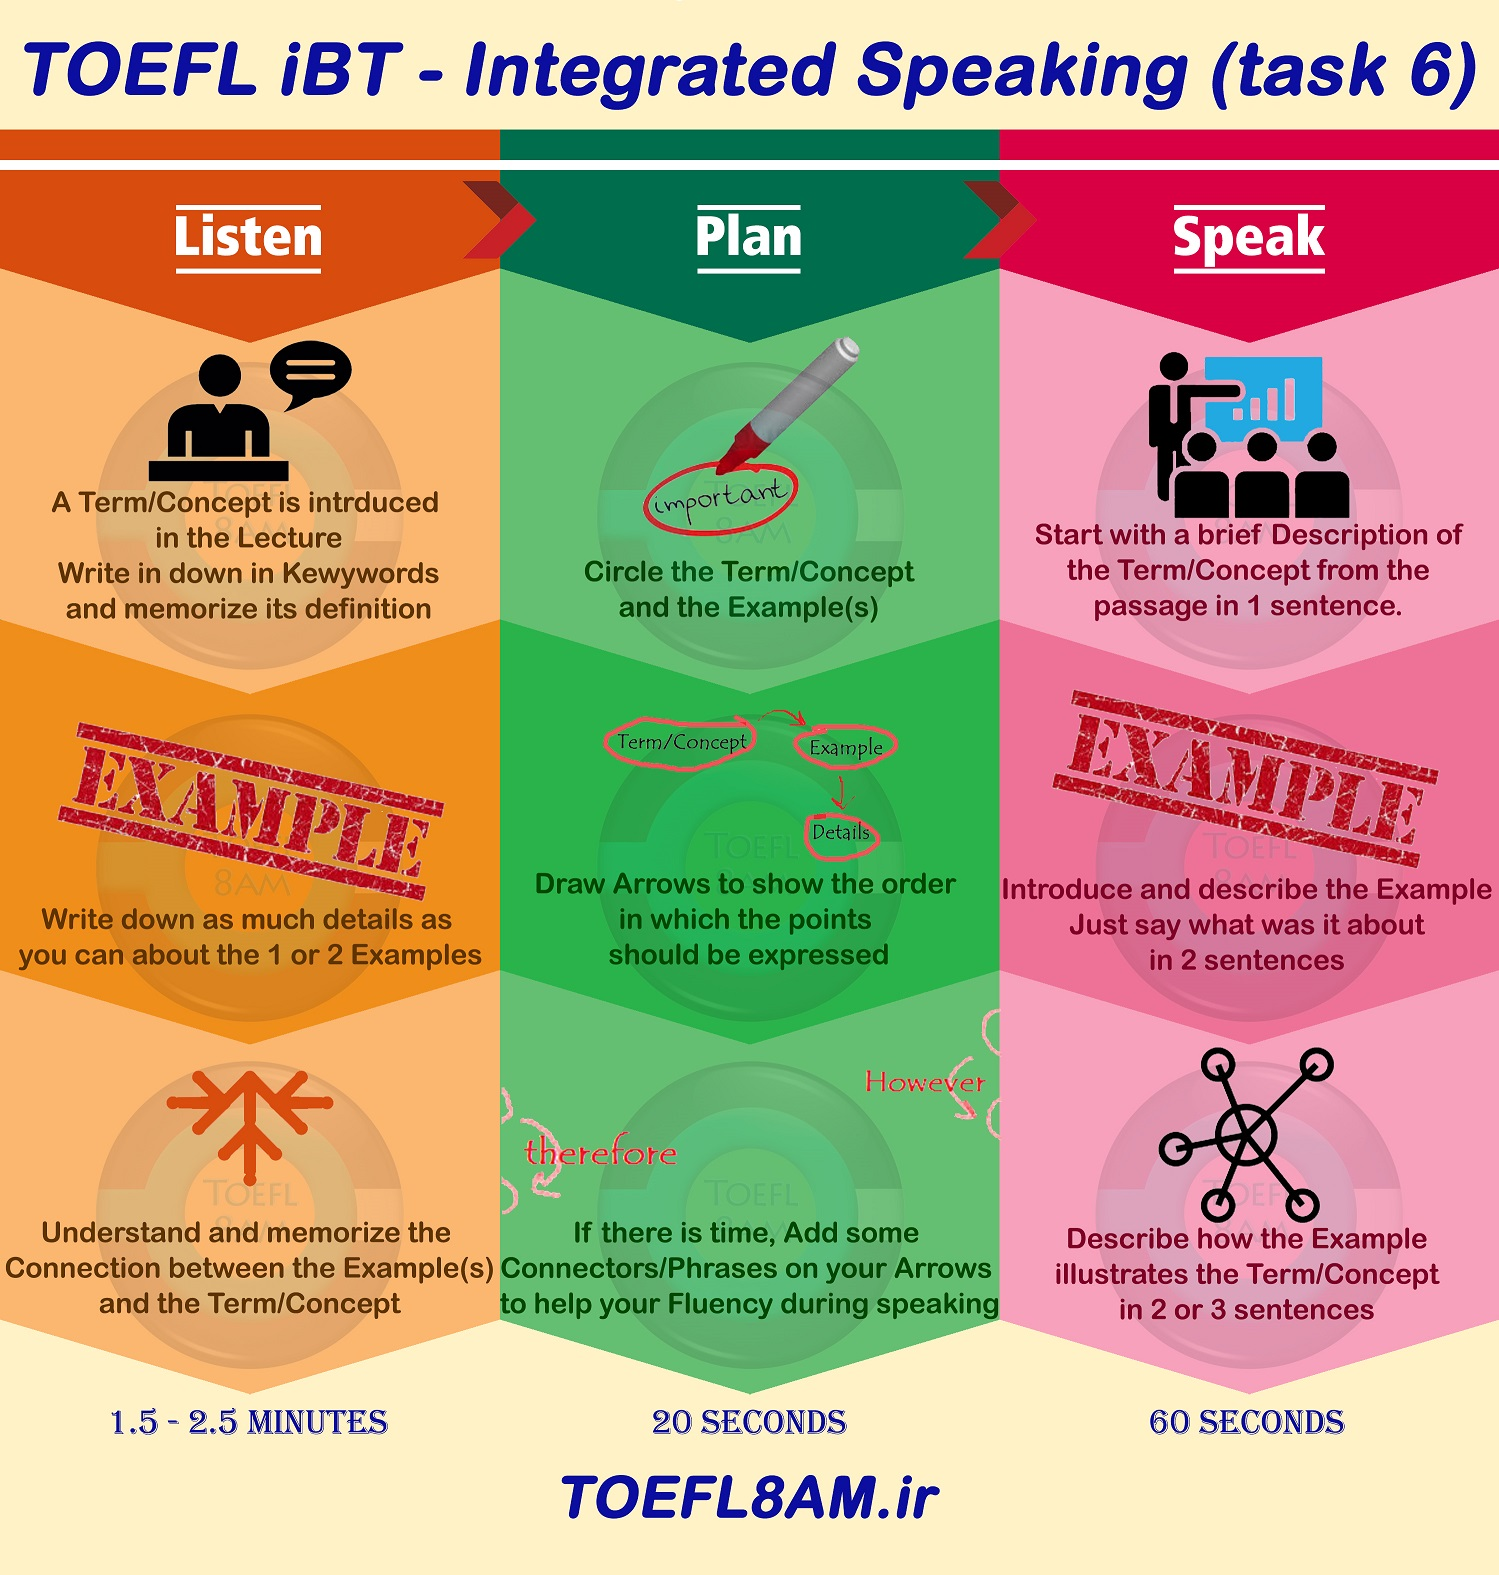 success in TOEFL iBT Speaking task 6